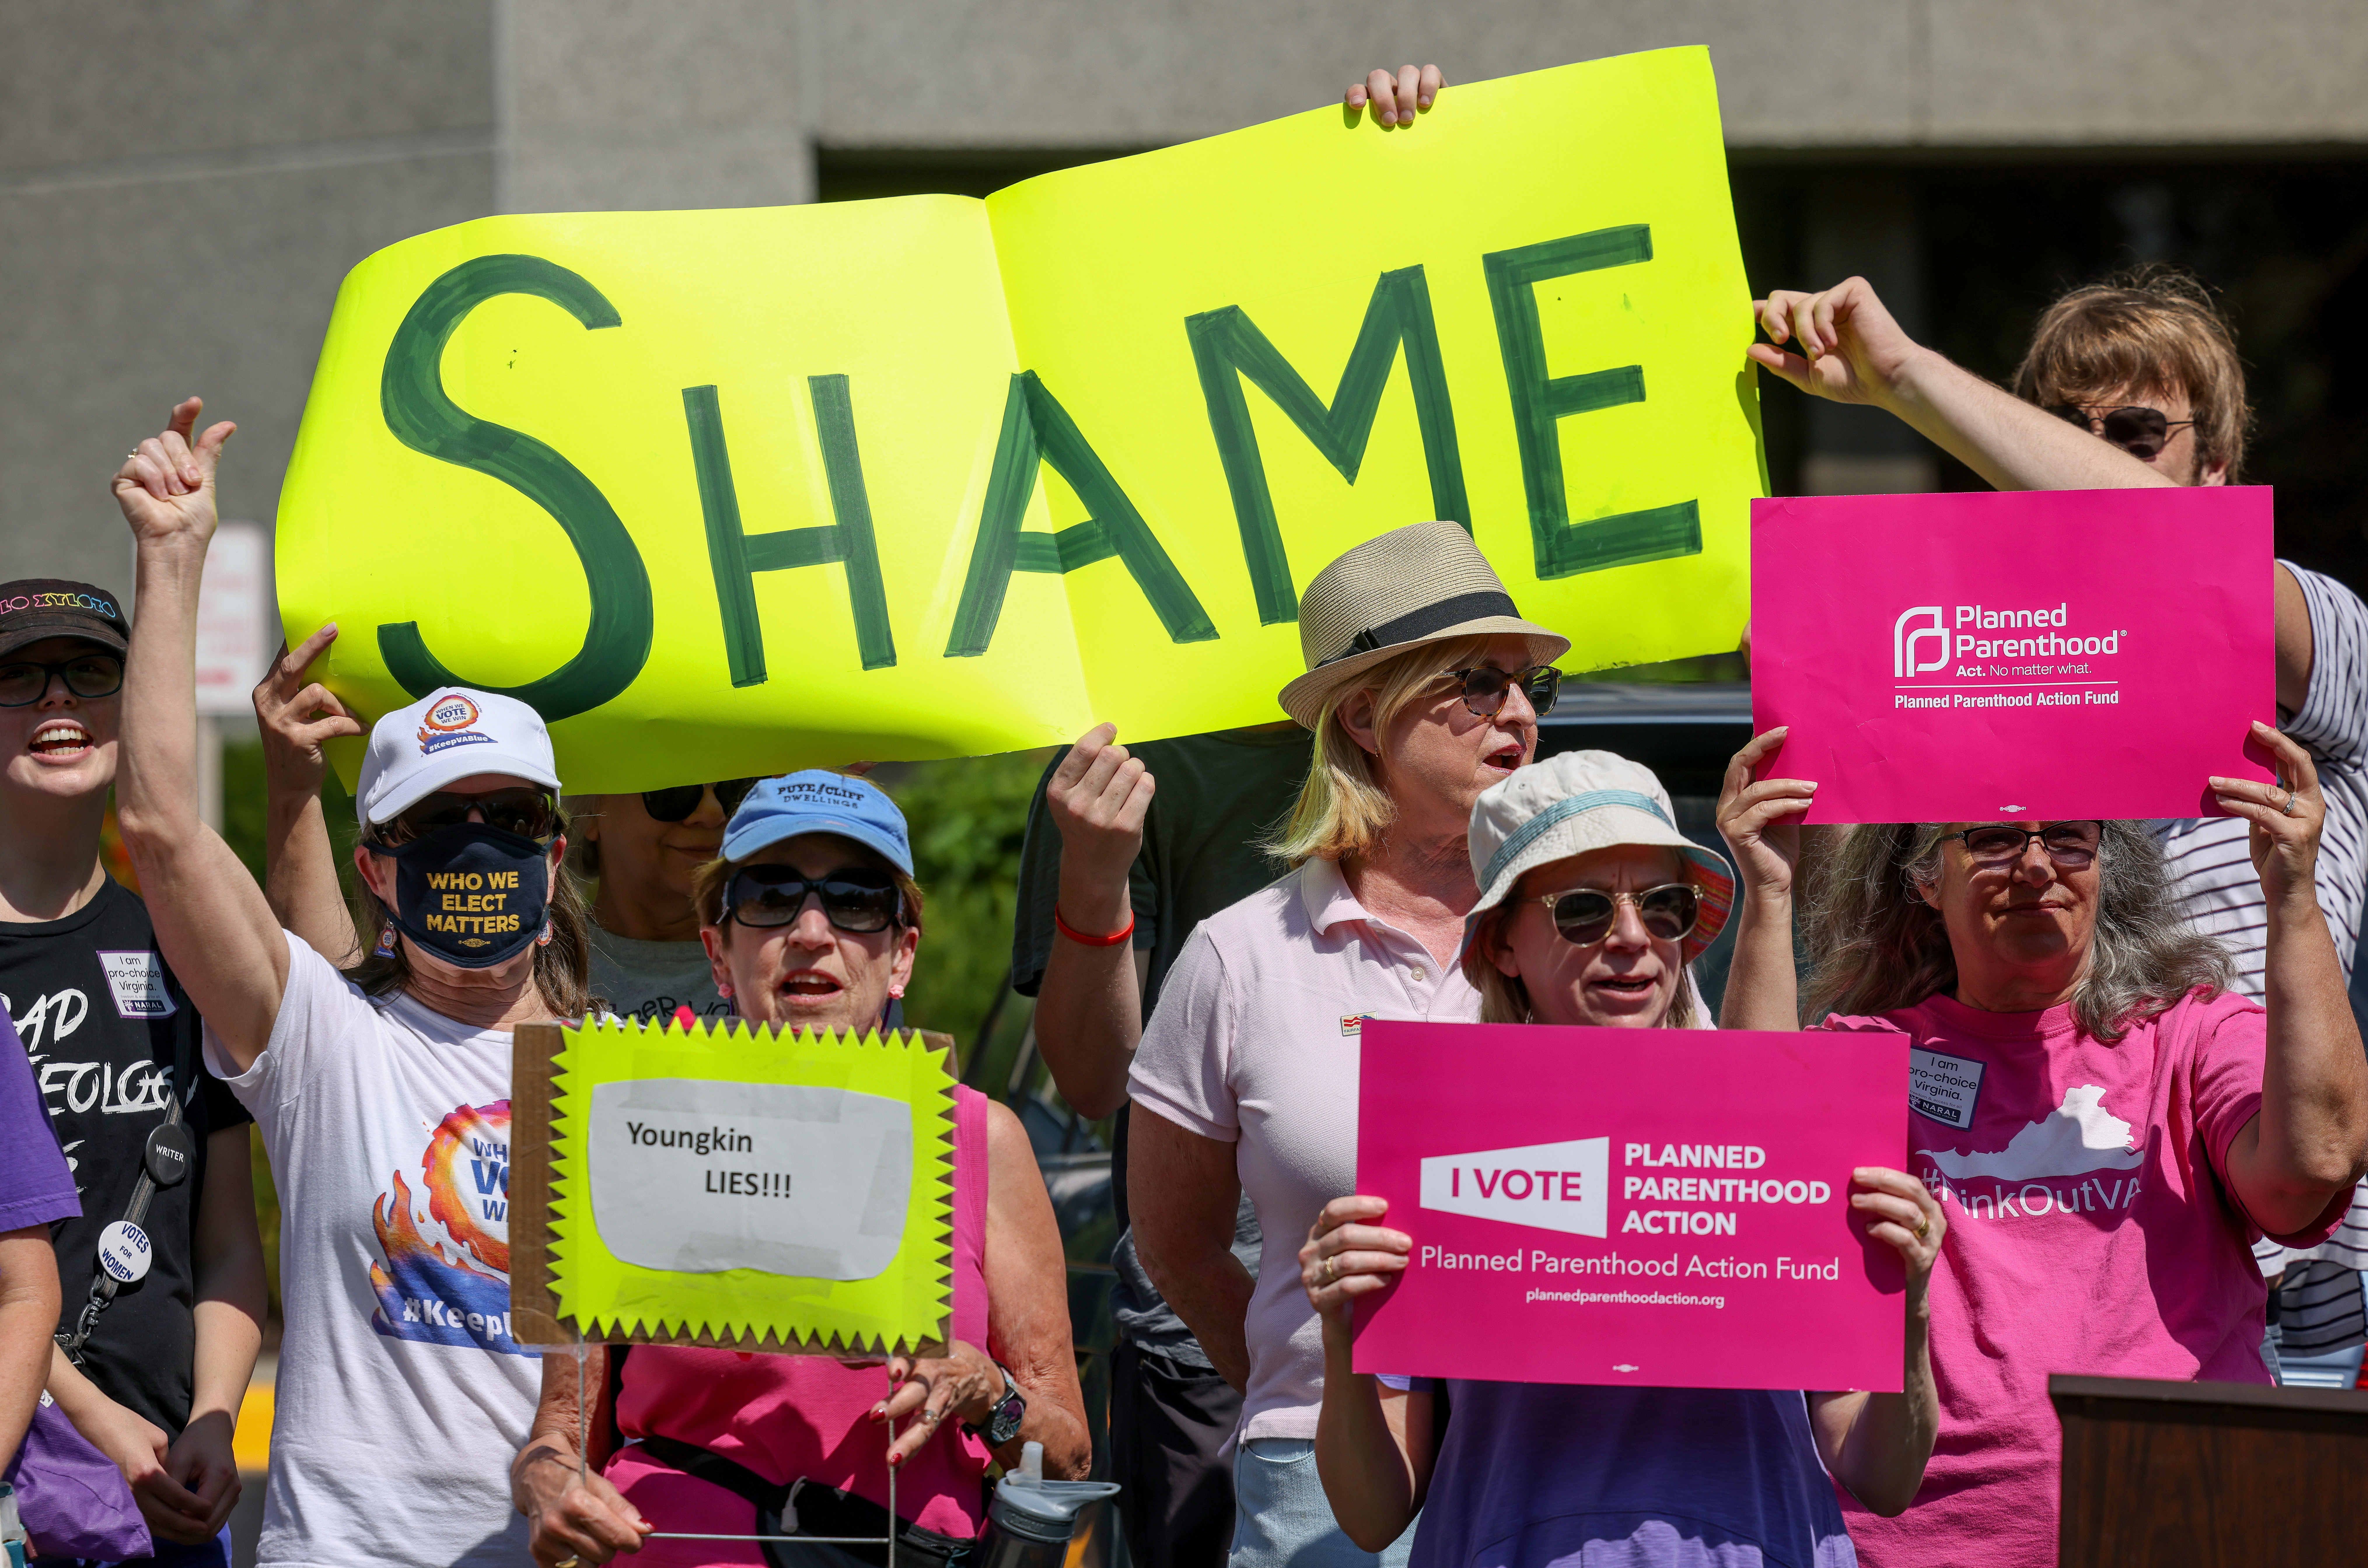 Demostrators protest outside of a campaign event for Virginia gubernatorial candidate Glenn Youngkin (R-VA), in McLean, Virginia, U.S., July 14, 2021. REUTERS/Evelyn Hockstein